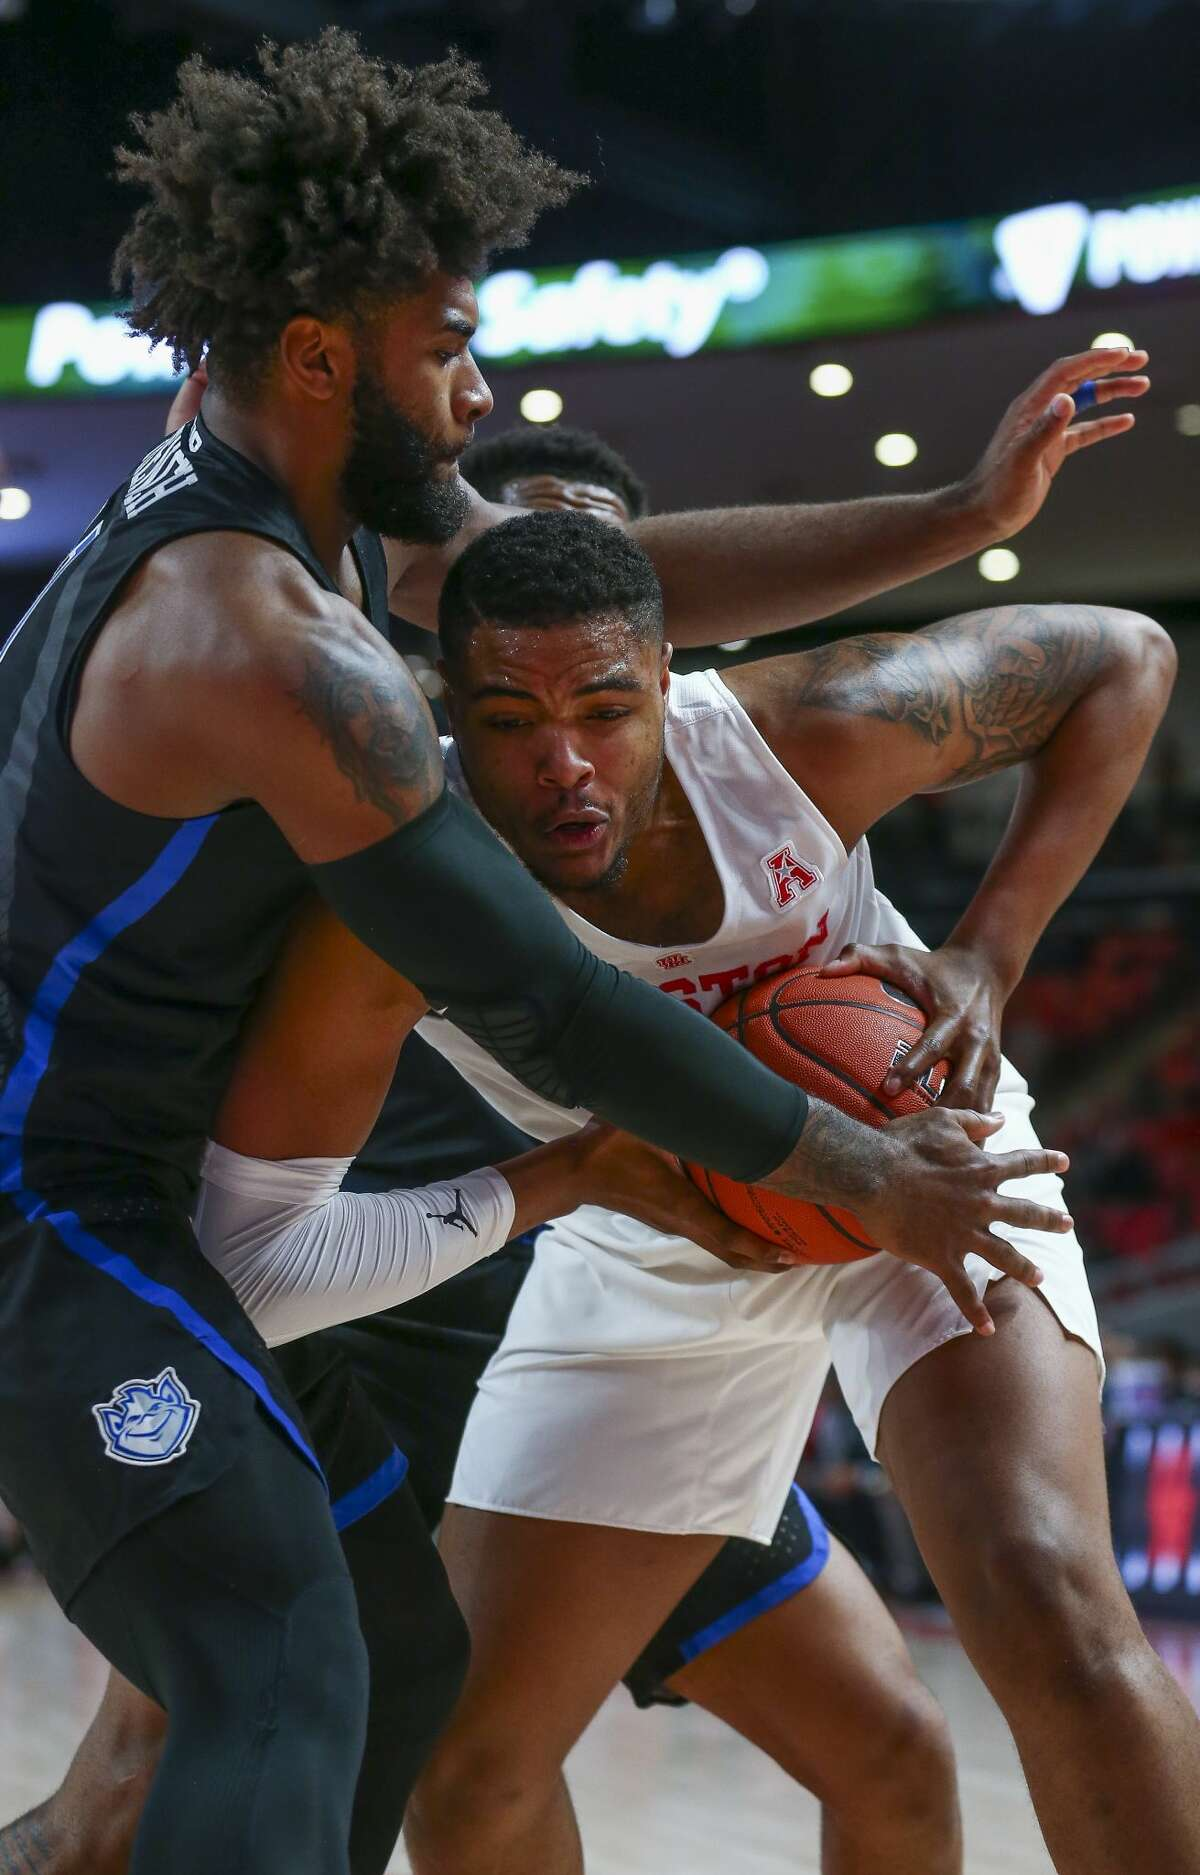 Houston Cougars forward Brison Gresham (55) shields the ball away from Saint Louis Billikens forward D.J. Foreman (1) during the first half of an NCAA basketball game at the Fertitta Center Sunday, Dec. 16, 2018, in Houston.